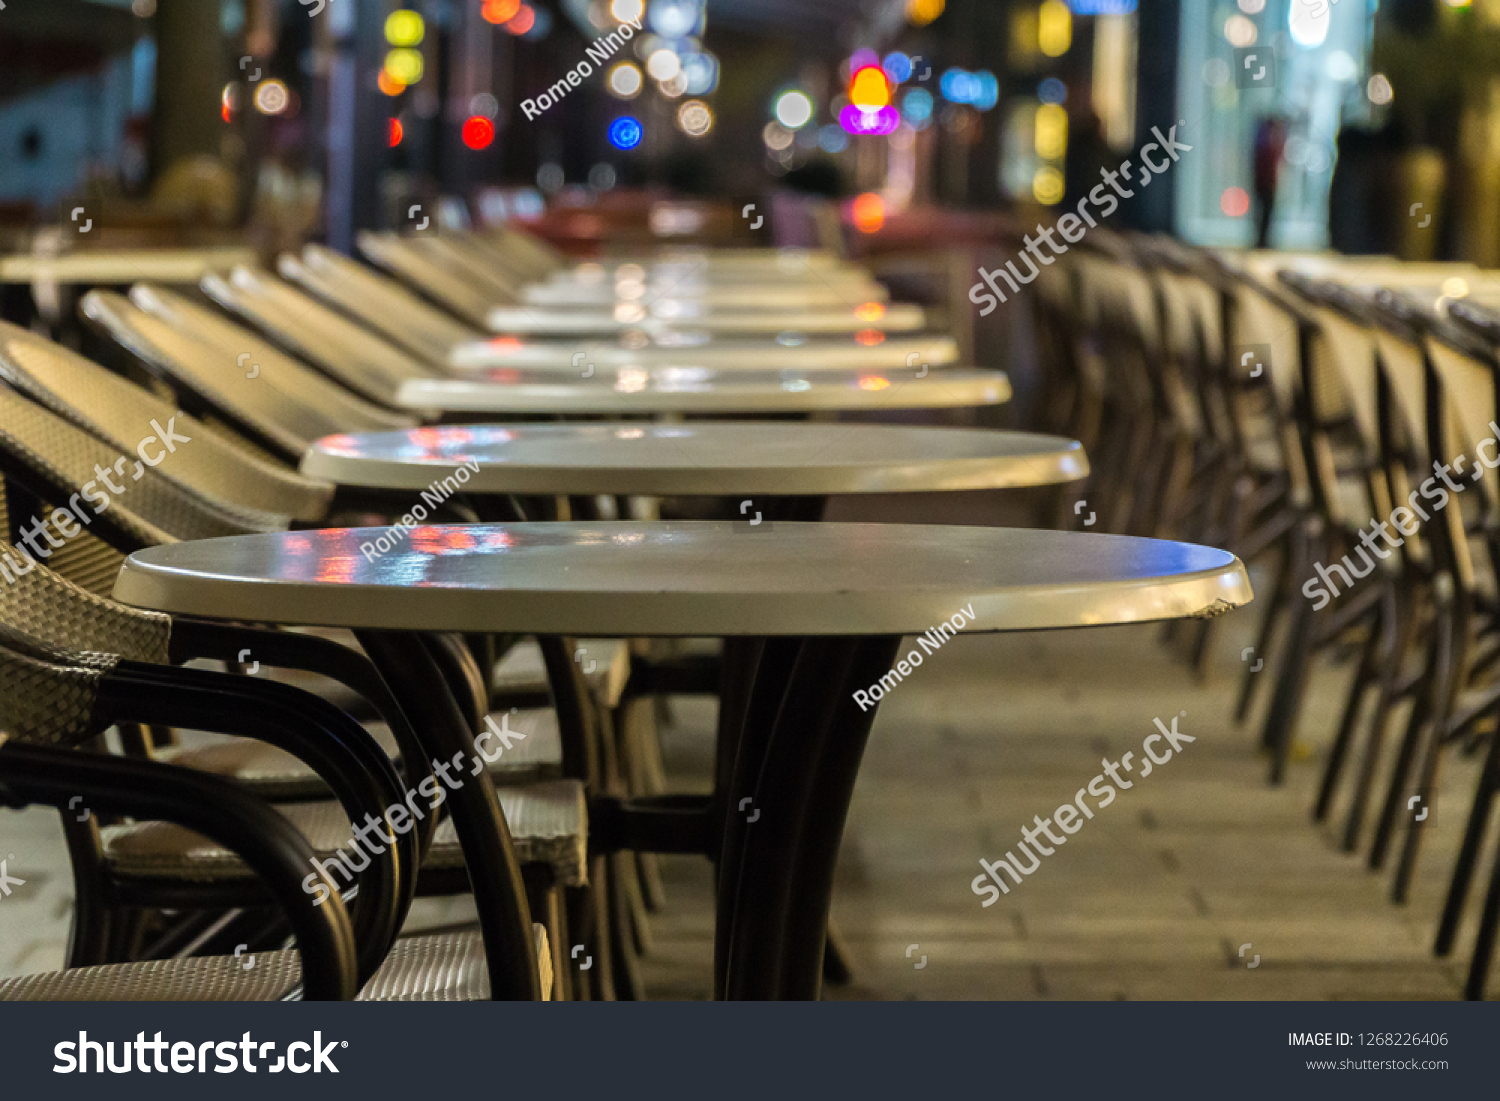 Tables and chairs in row